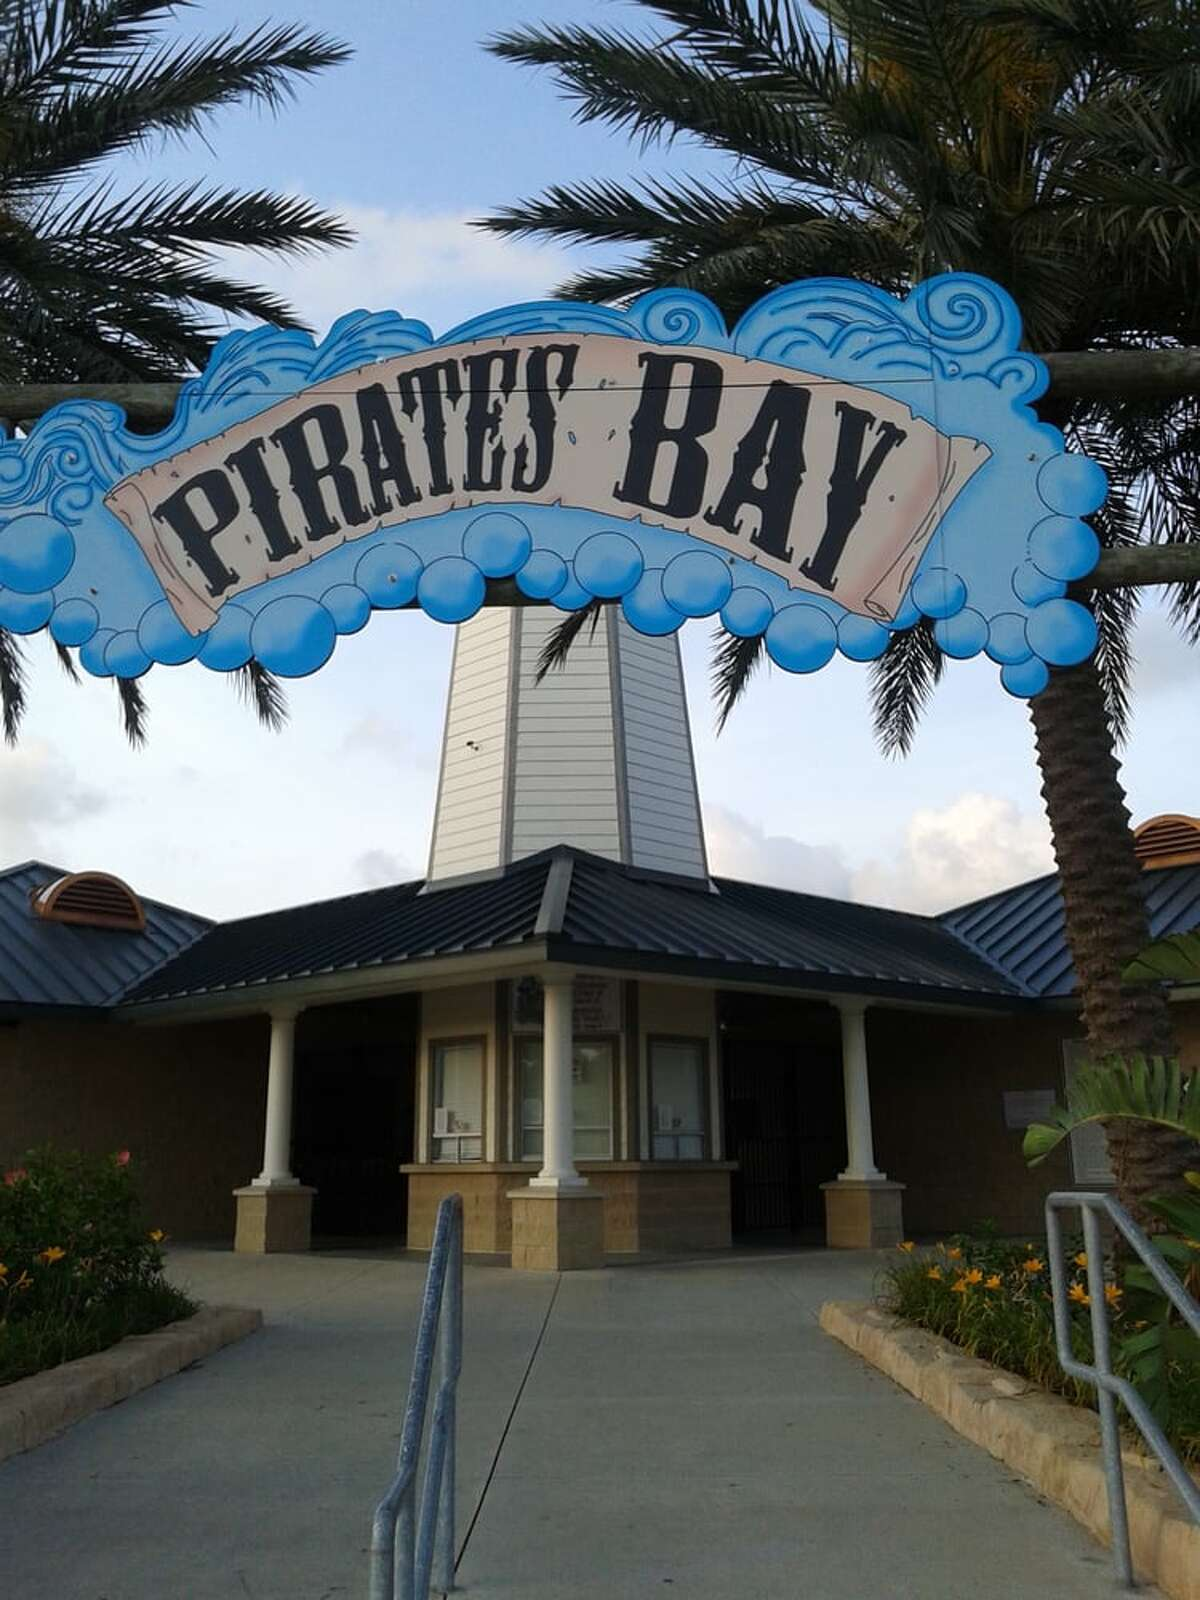 2) Pirates Bay Water Park Address: 5300 E Rd, Baytown, TX 77521 Website: baytown.orgPhoto: Pam L/ Yelp